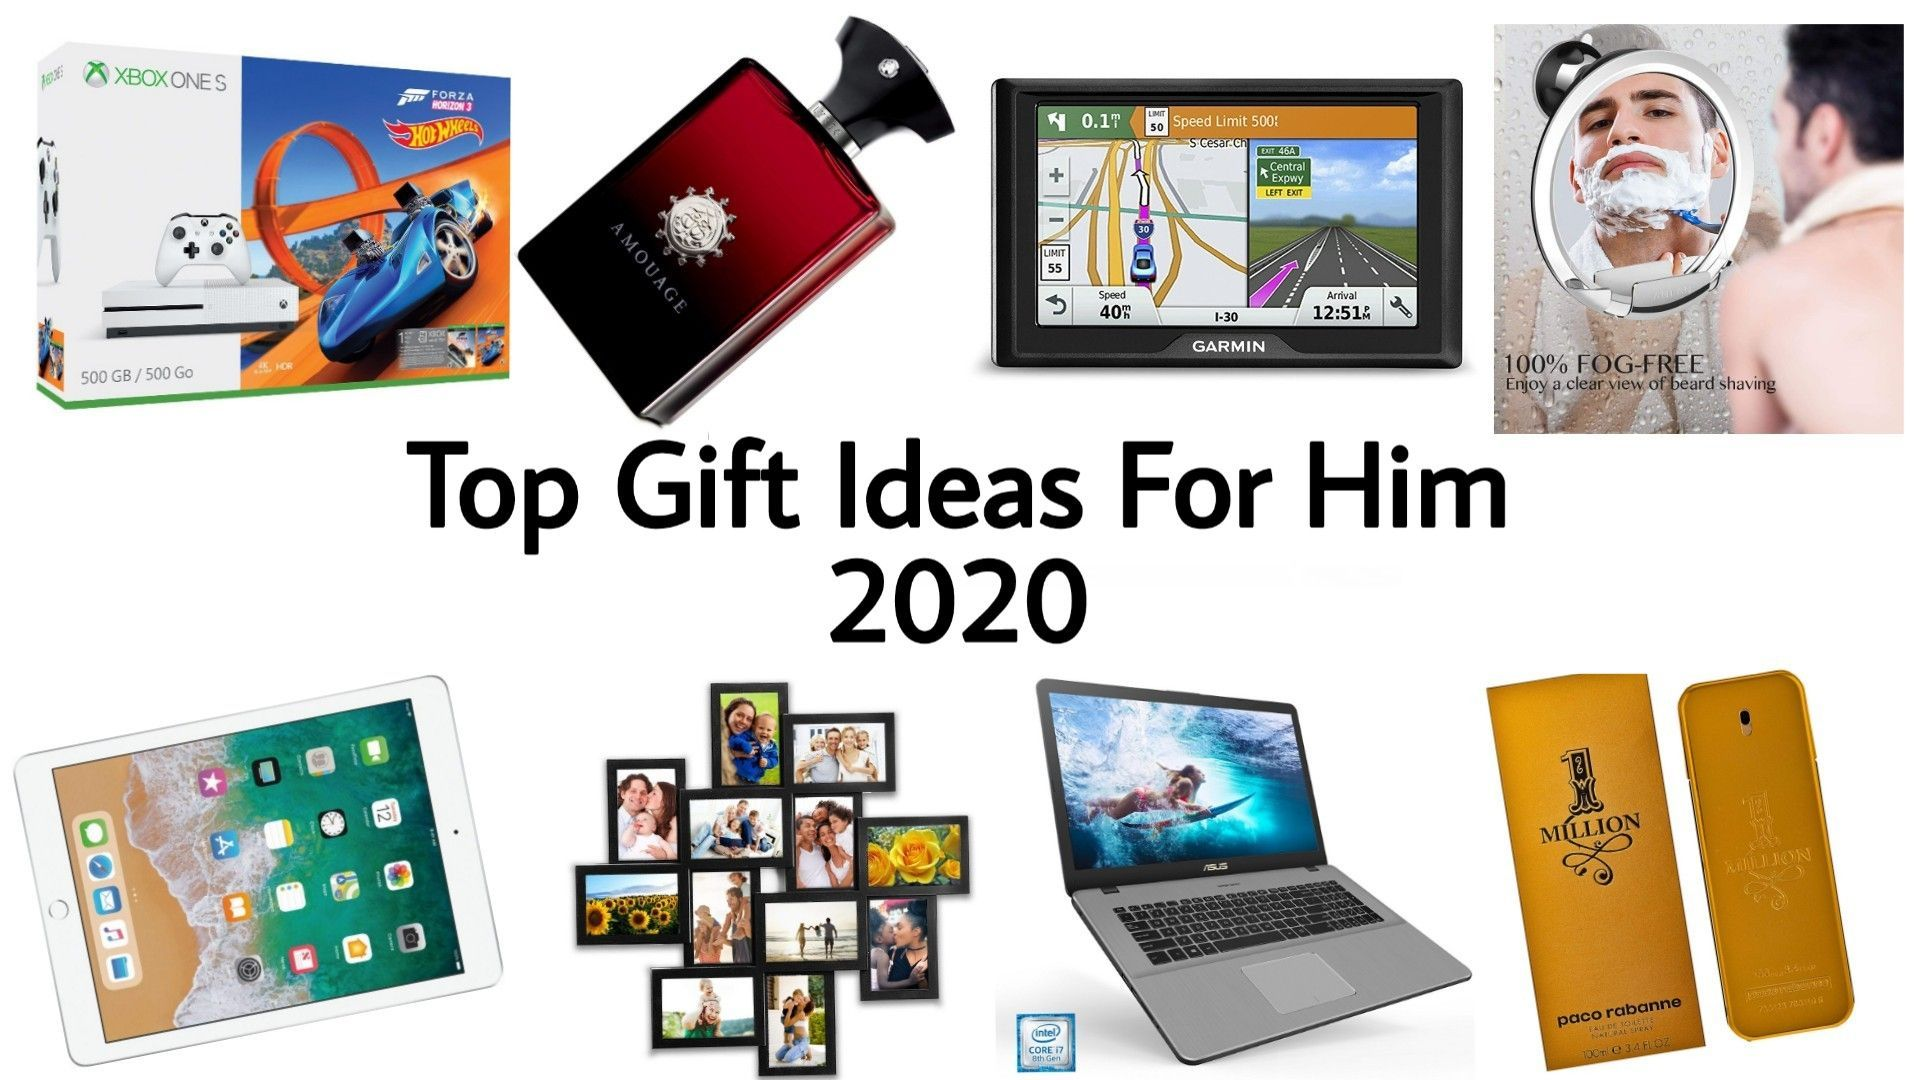 Top Christmas Gifts For Him Boys Boyfriend Husband 2020 Best Birthday Gift Idea In 2020 Christmas Gifts For Him Christmas Gift Ides Christmas Gifts For Husband